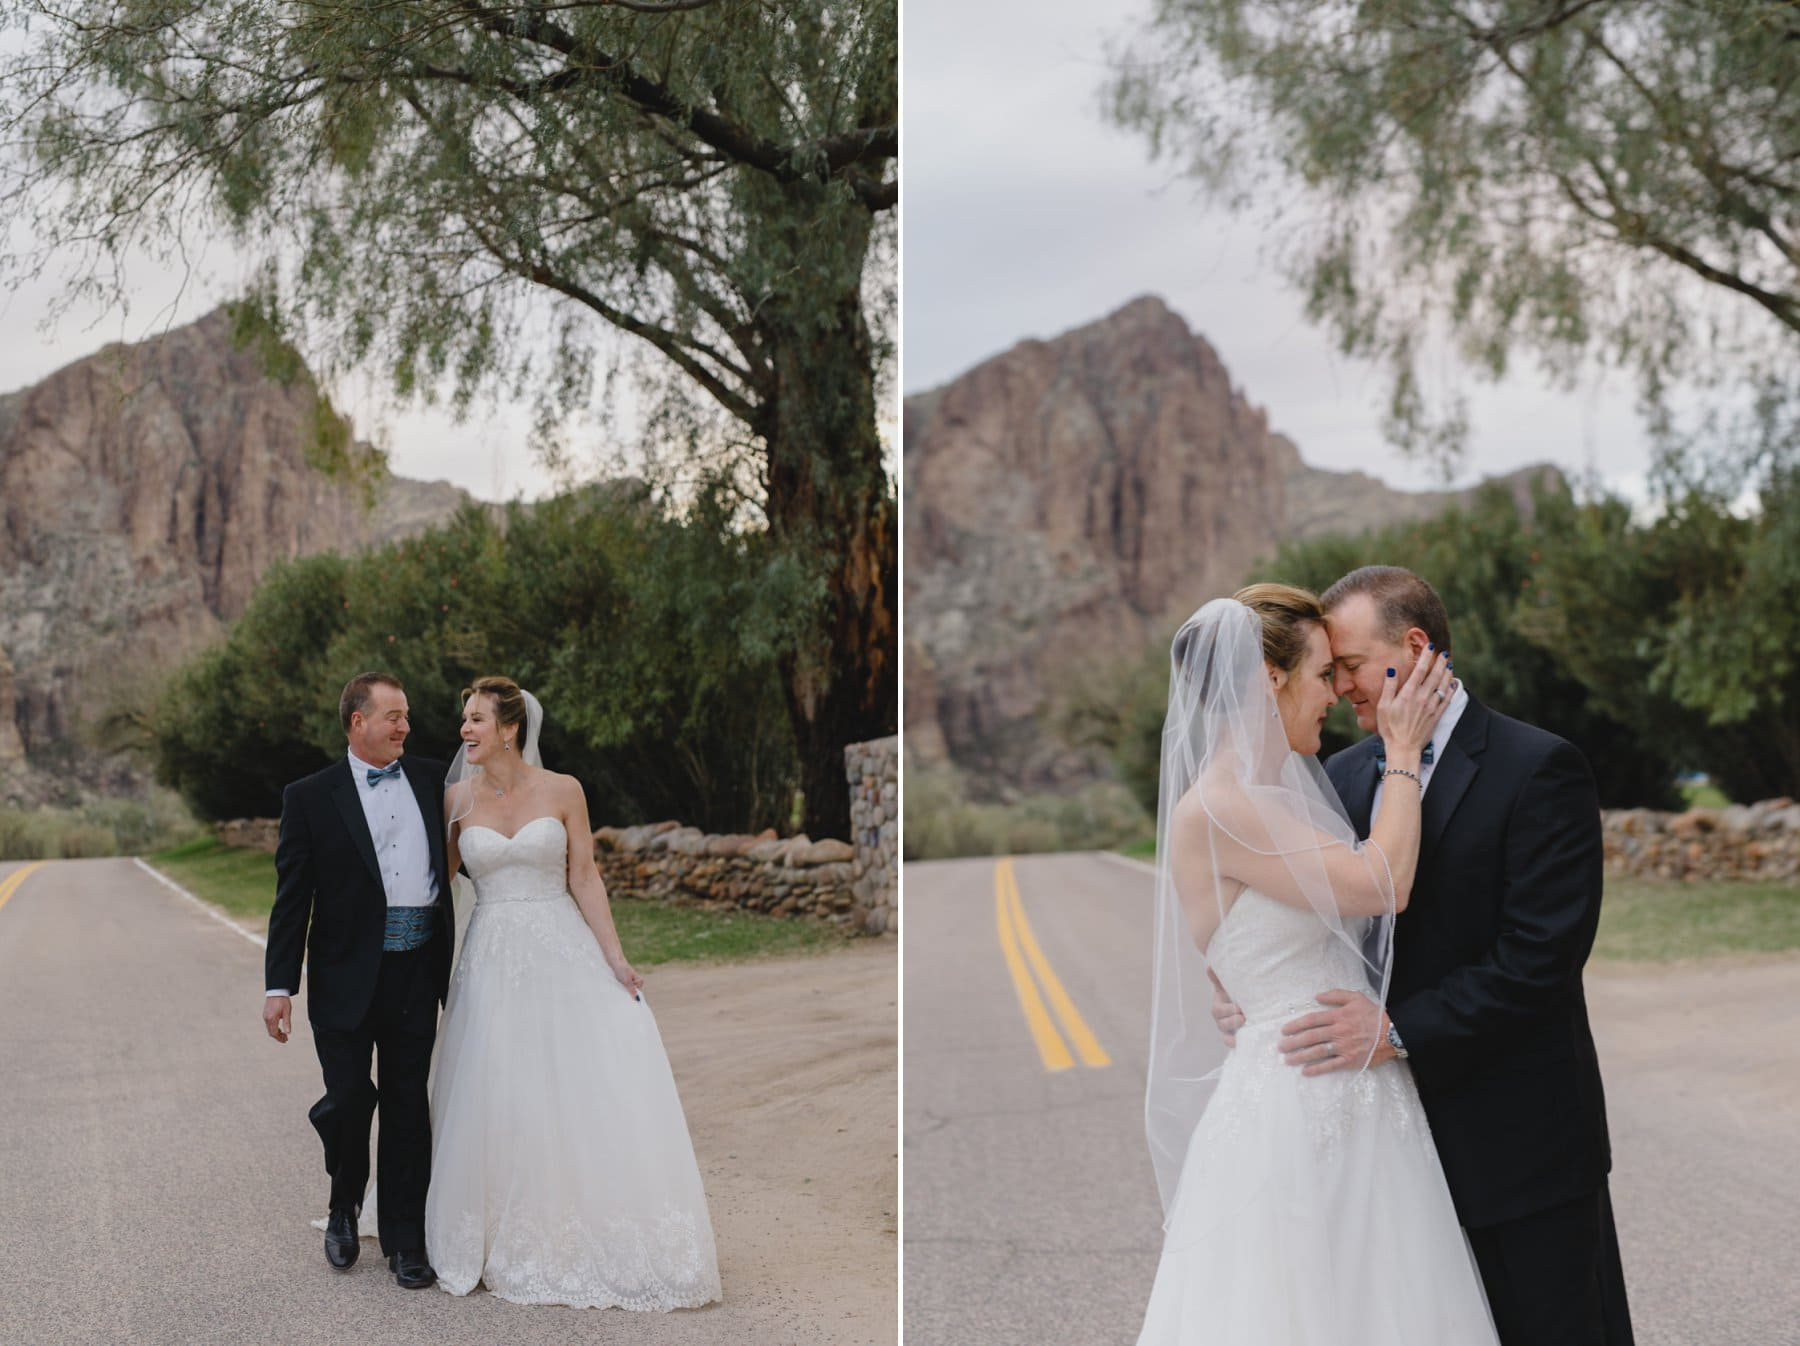 genuine emotion wedding photos Phoenix Arizona